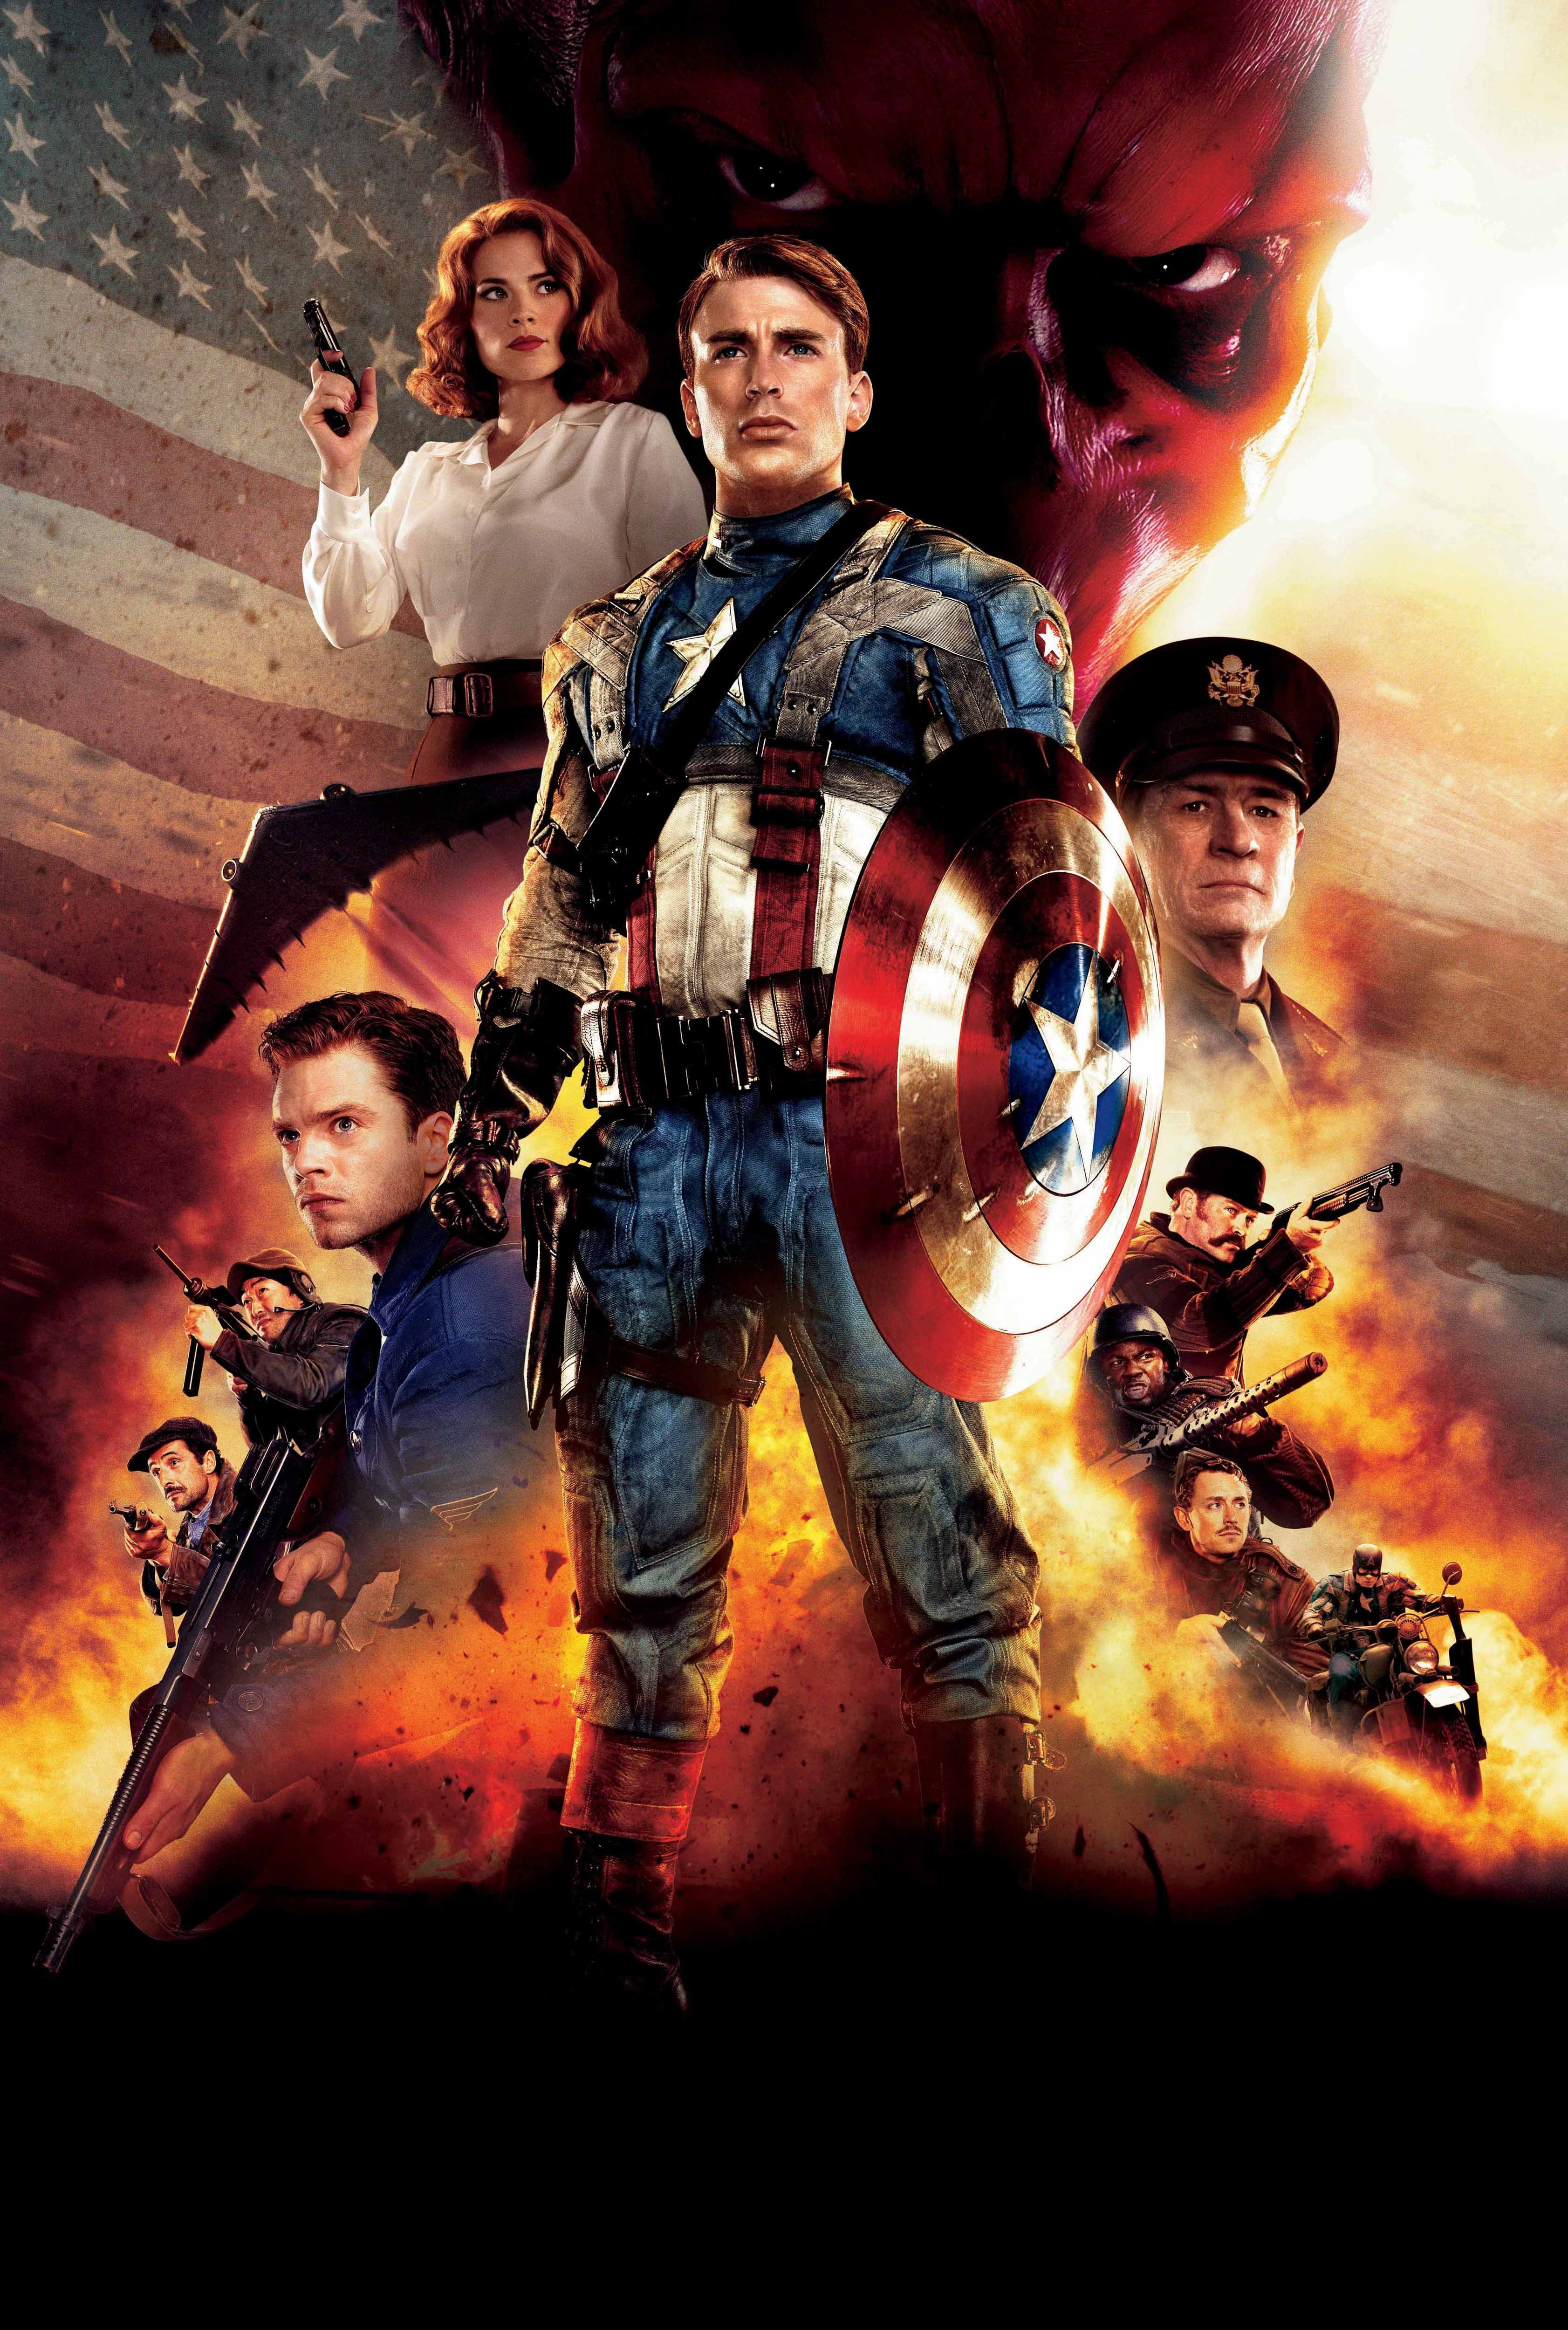 The film The First Avenger: Confrontation (2016): actors and roles